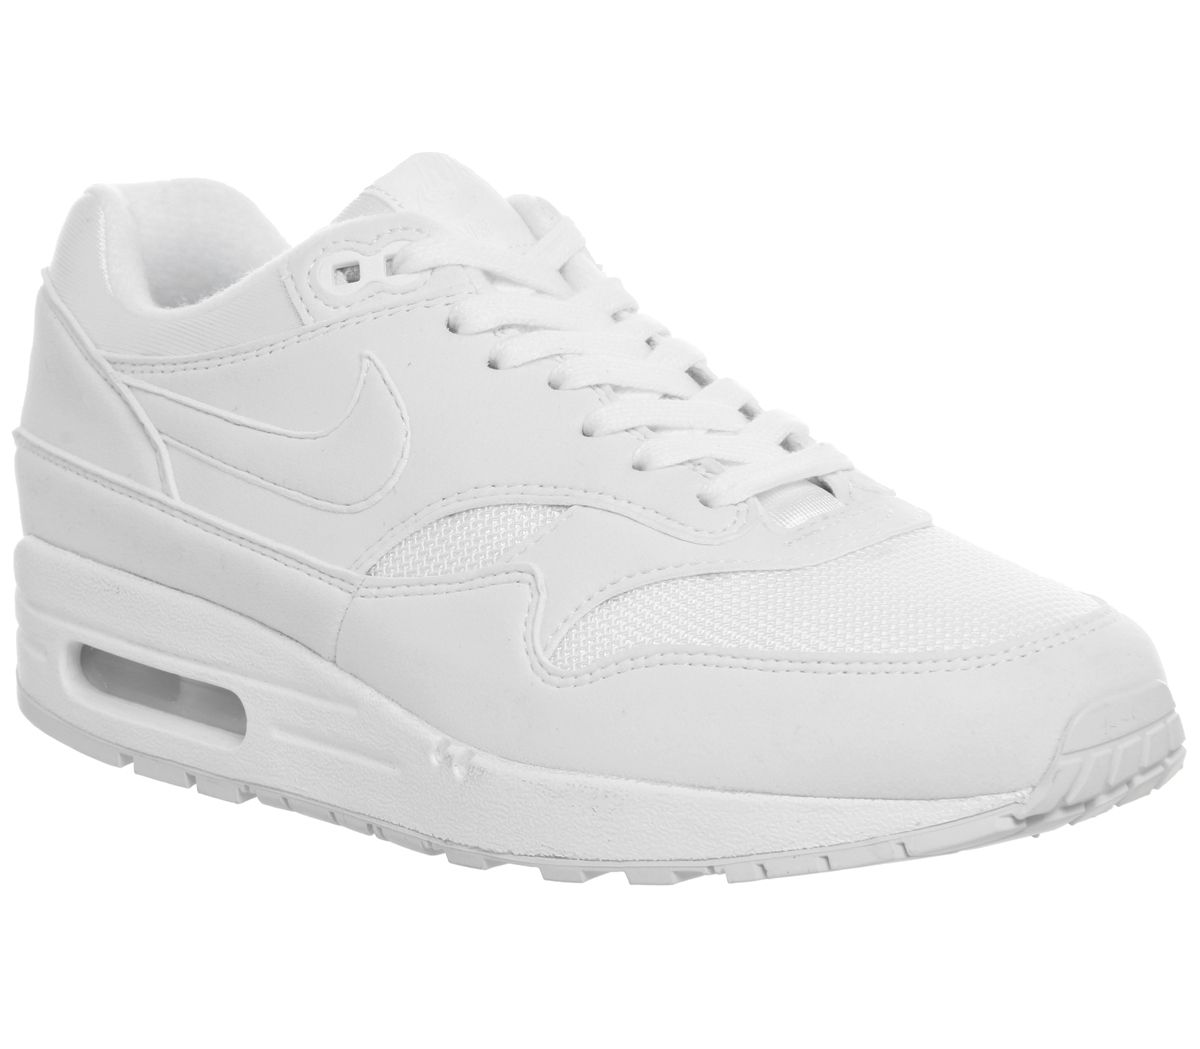 3d7c7d9fe5eae Nike Air Max 1 Trainers White White Pure Platinum F - Hers trainers